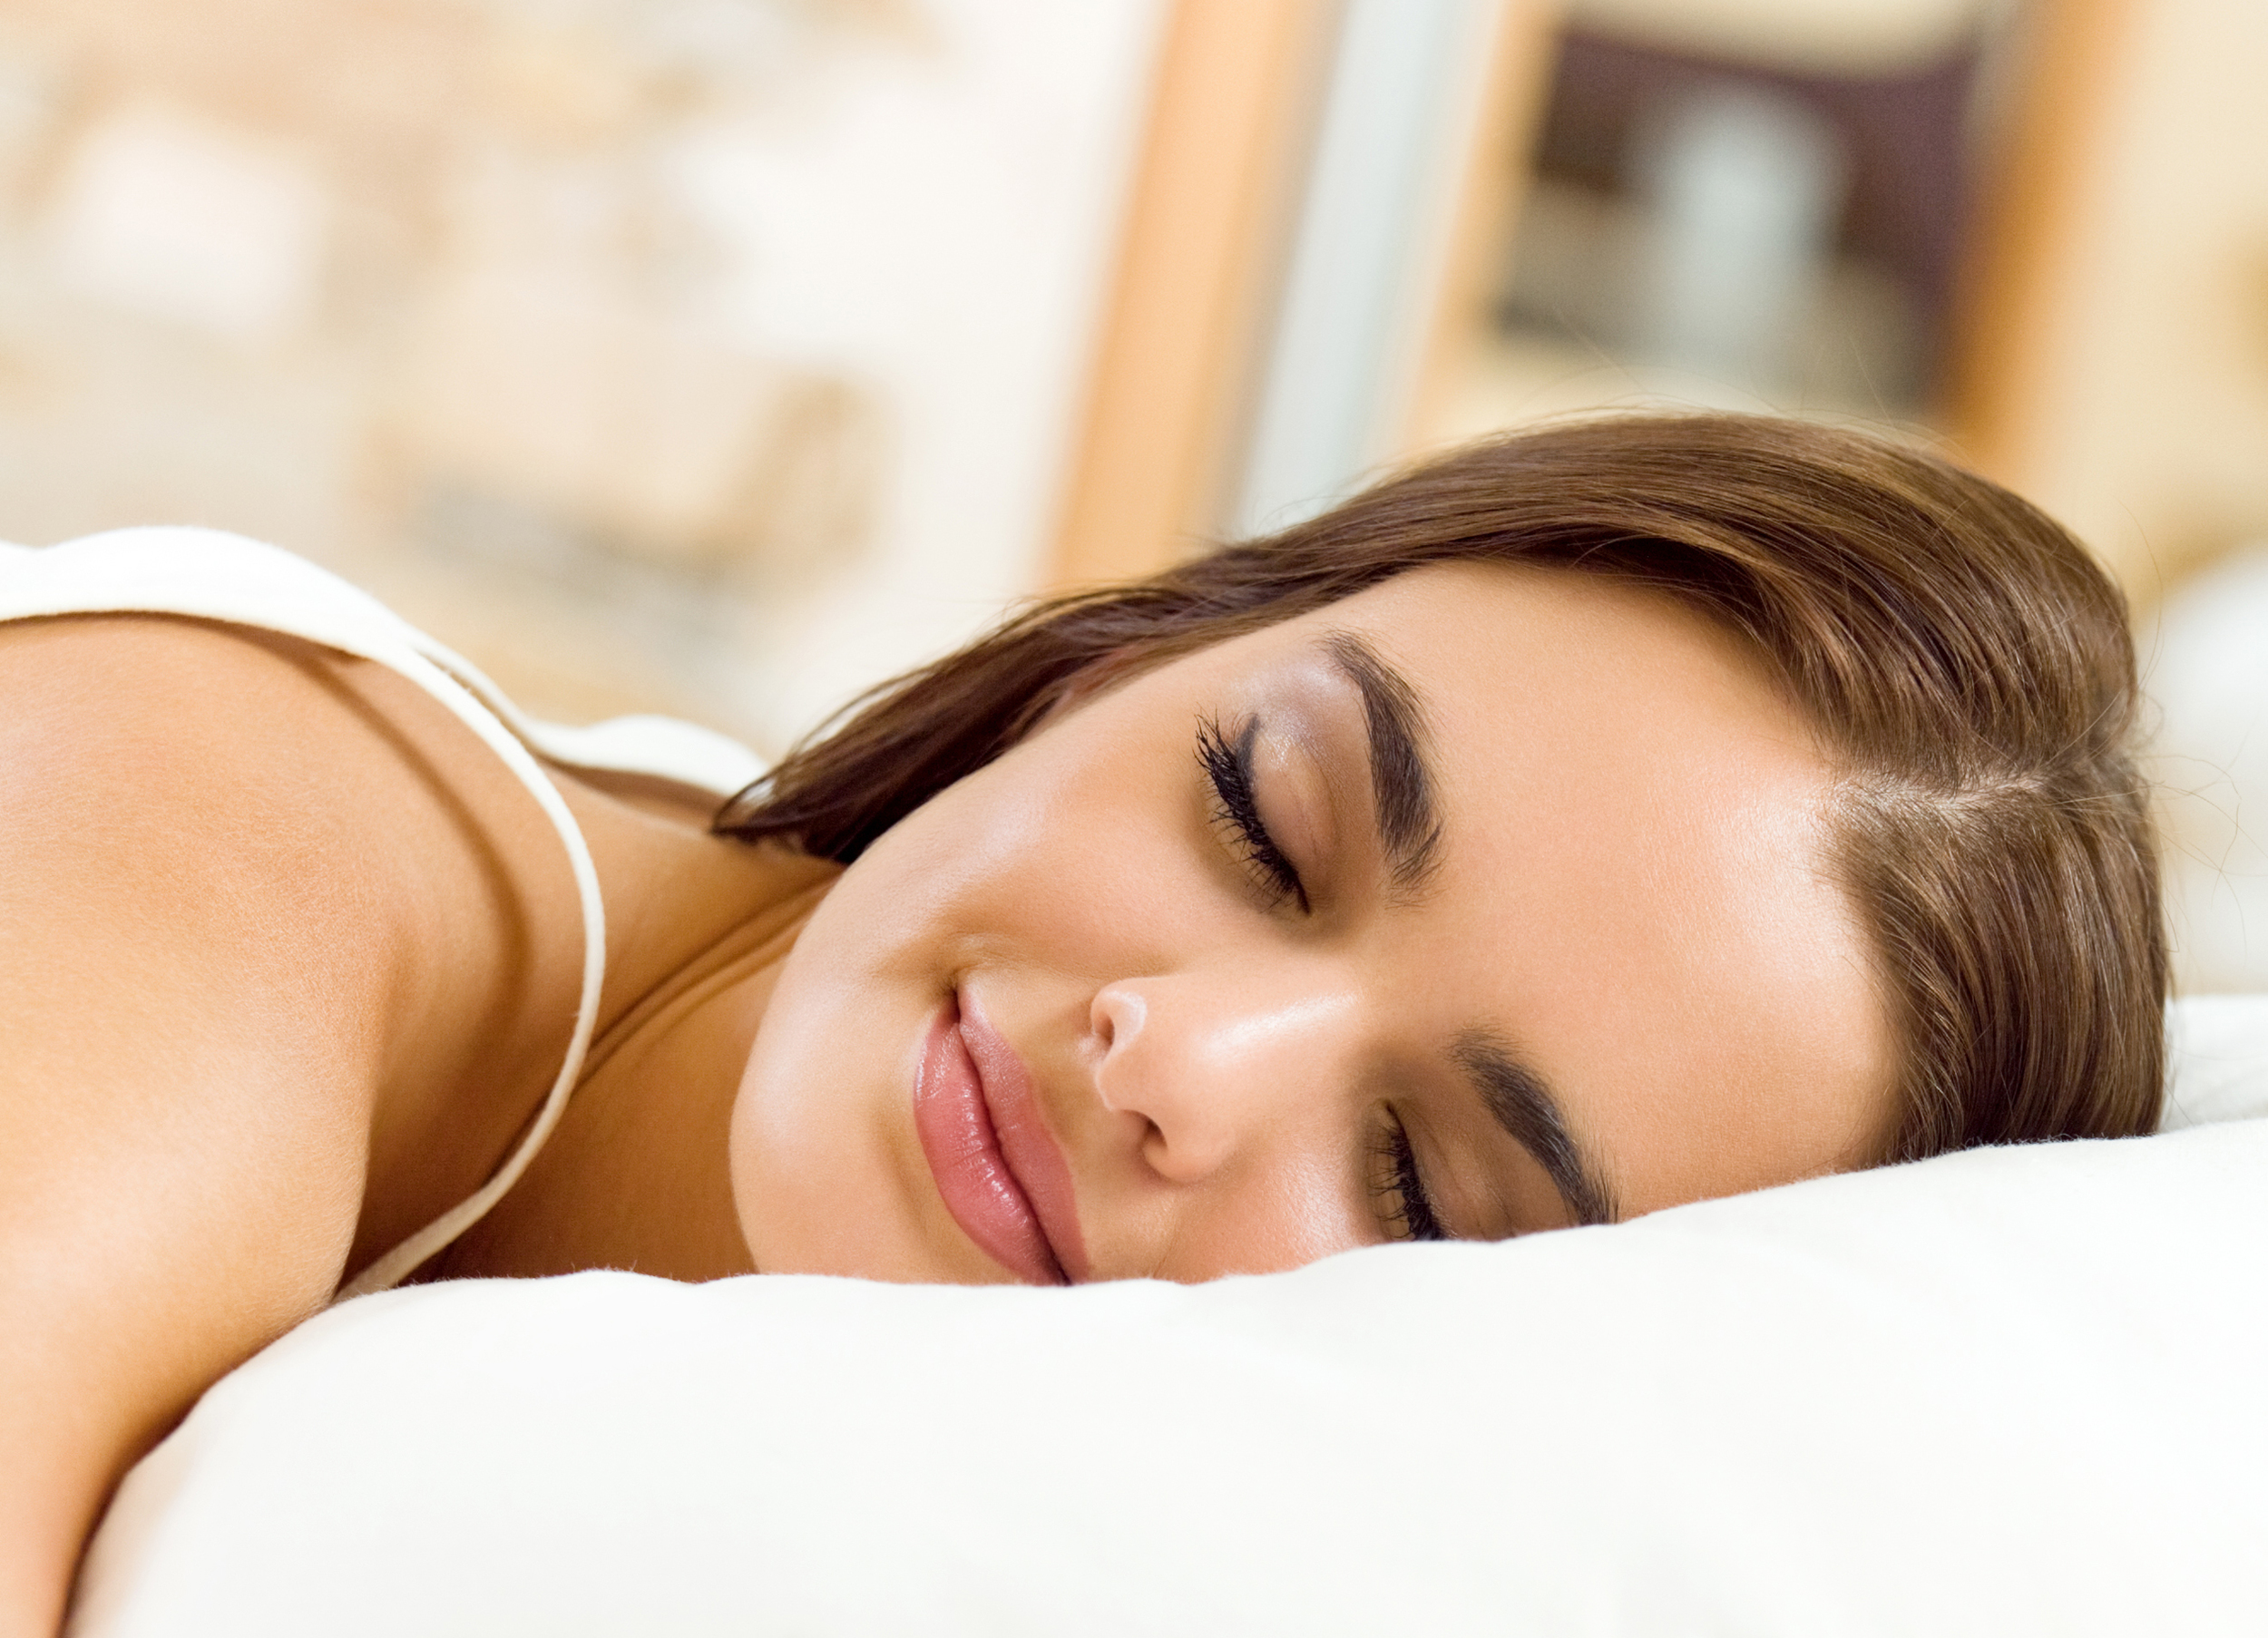 8 to 8 Dental provides sedation dentistry to make sure your visits are as comfortable as possible.